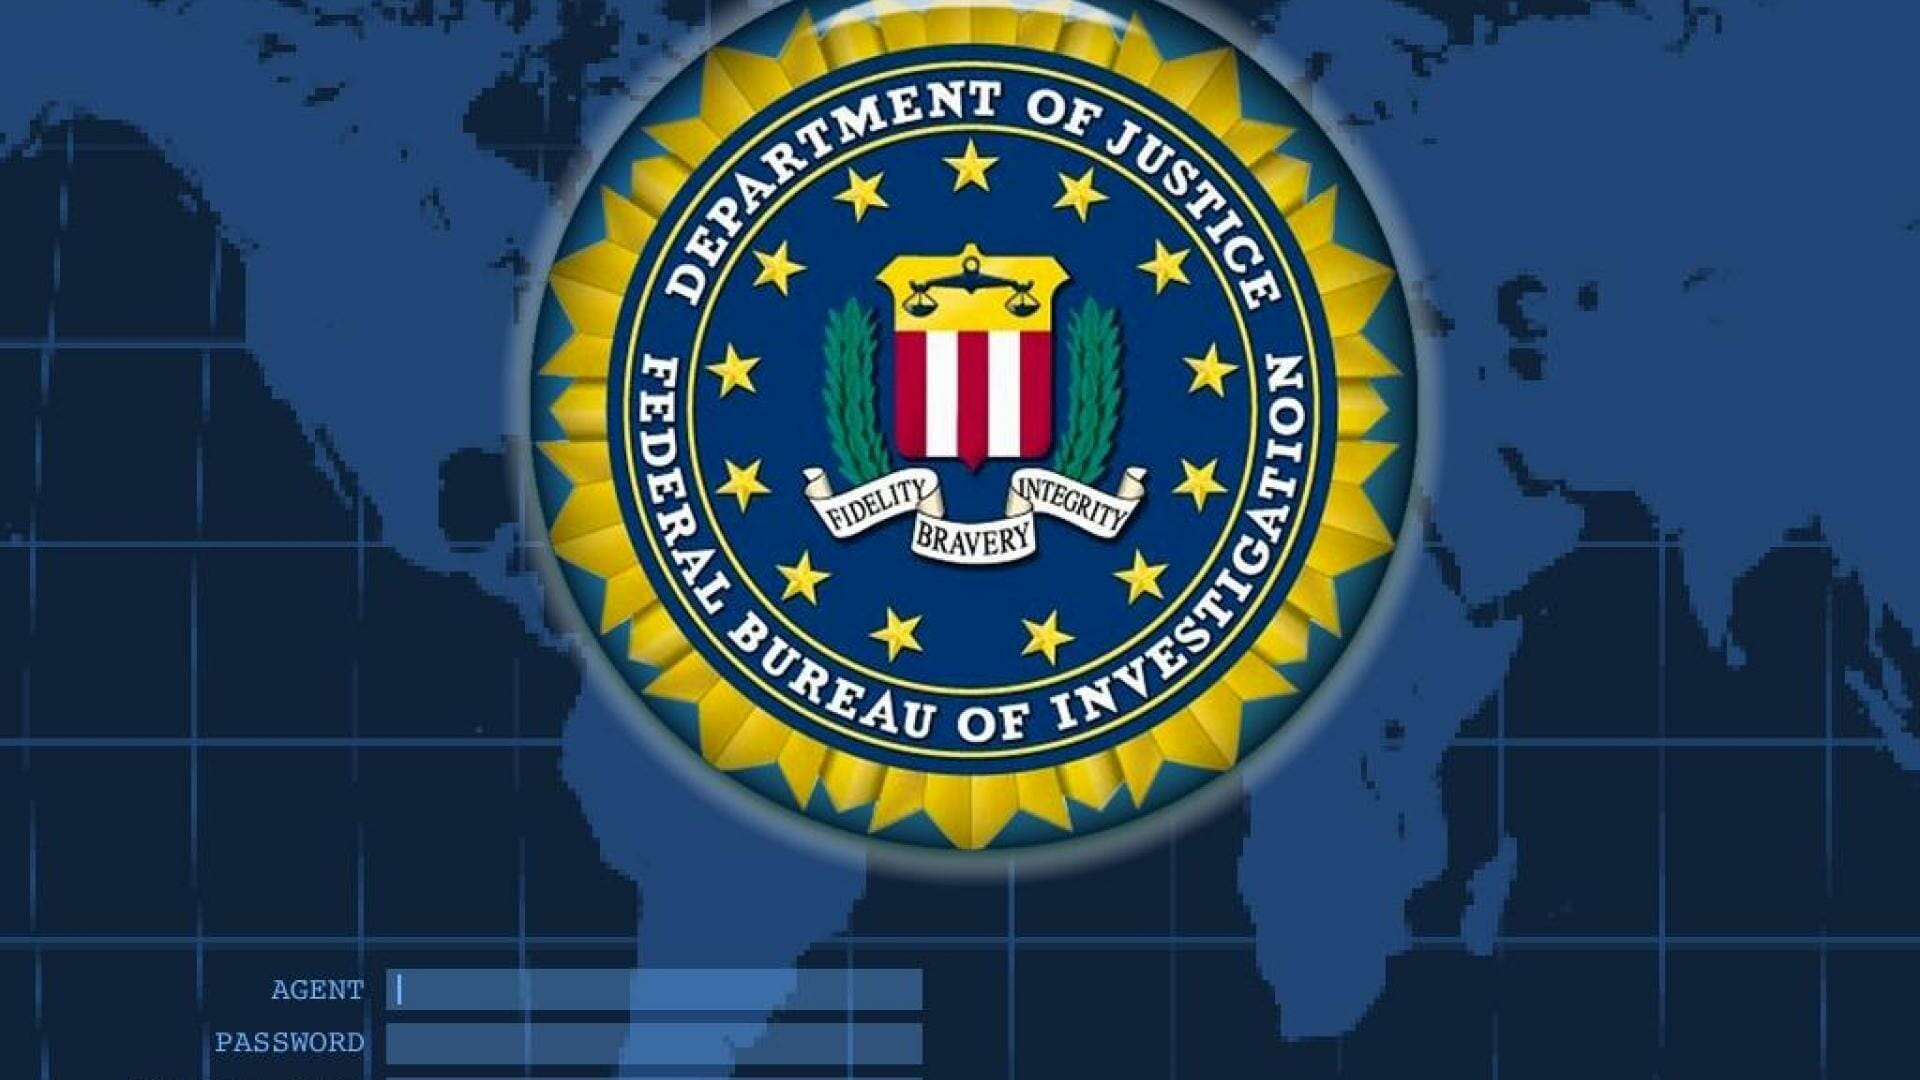 OIG Report: Findings of Misconduct By Senior FBI Official For Having Unauthorized Contact with Media, Accepting Unauthorized Gifts From Reporters